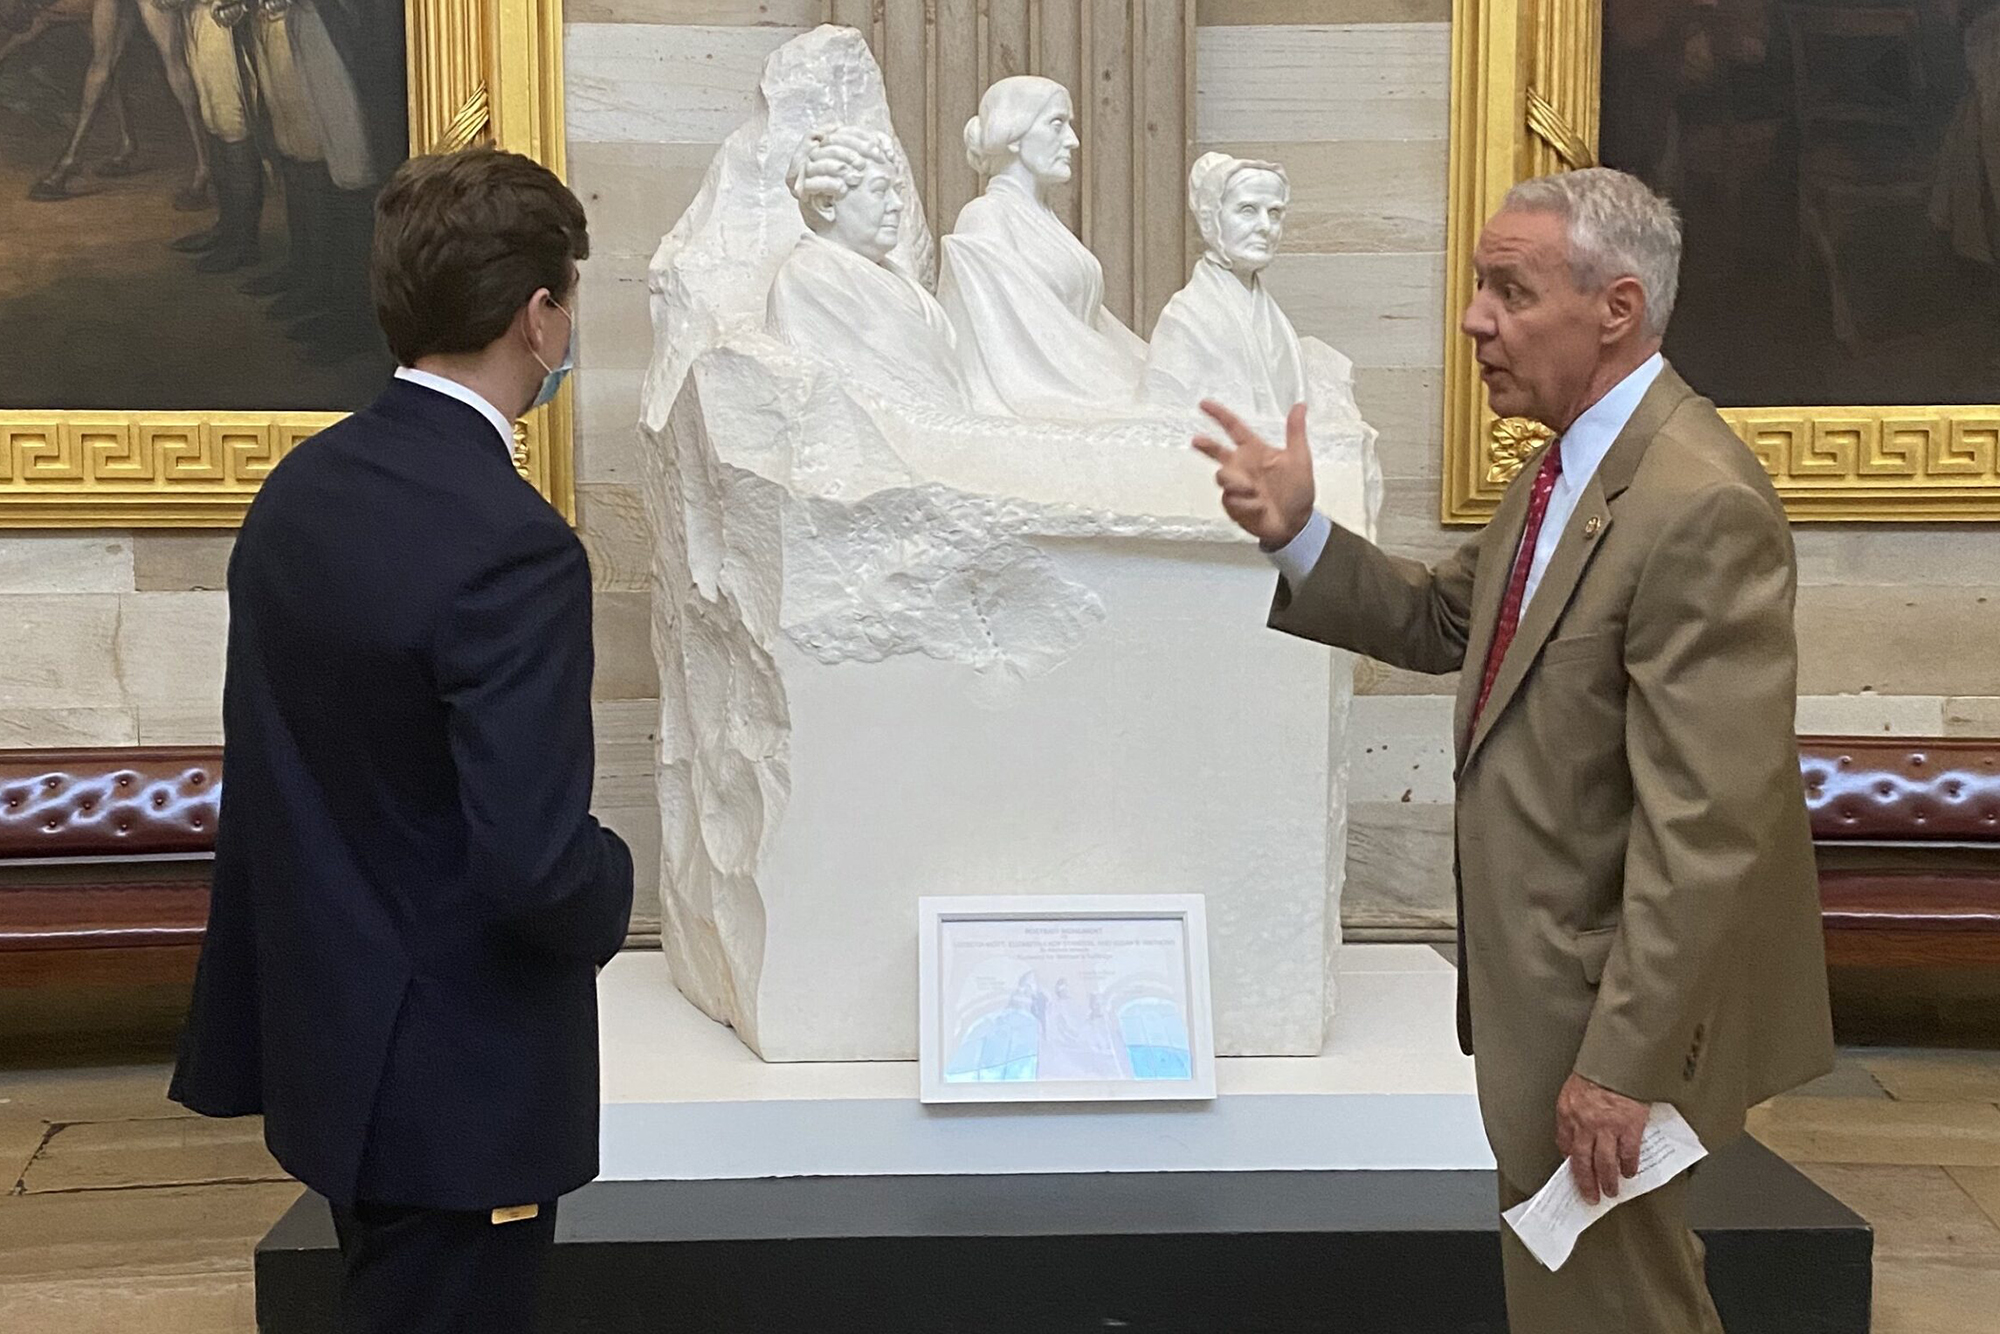 Rep. Ken Buck gives a tour in the U.S. Capitol.